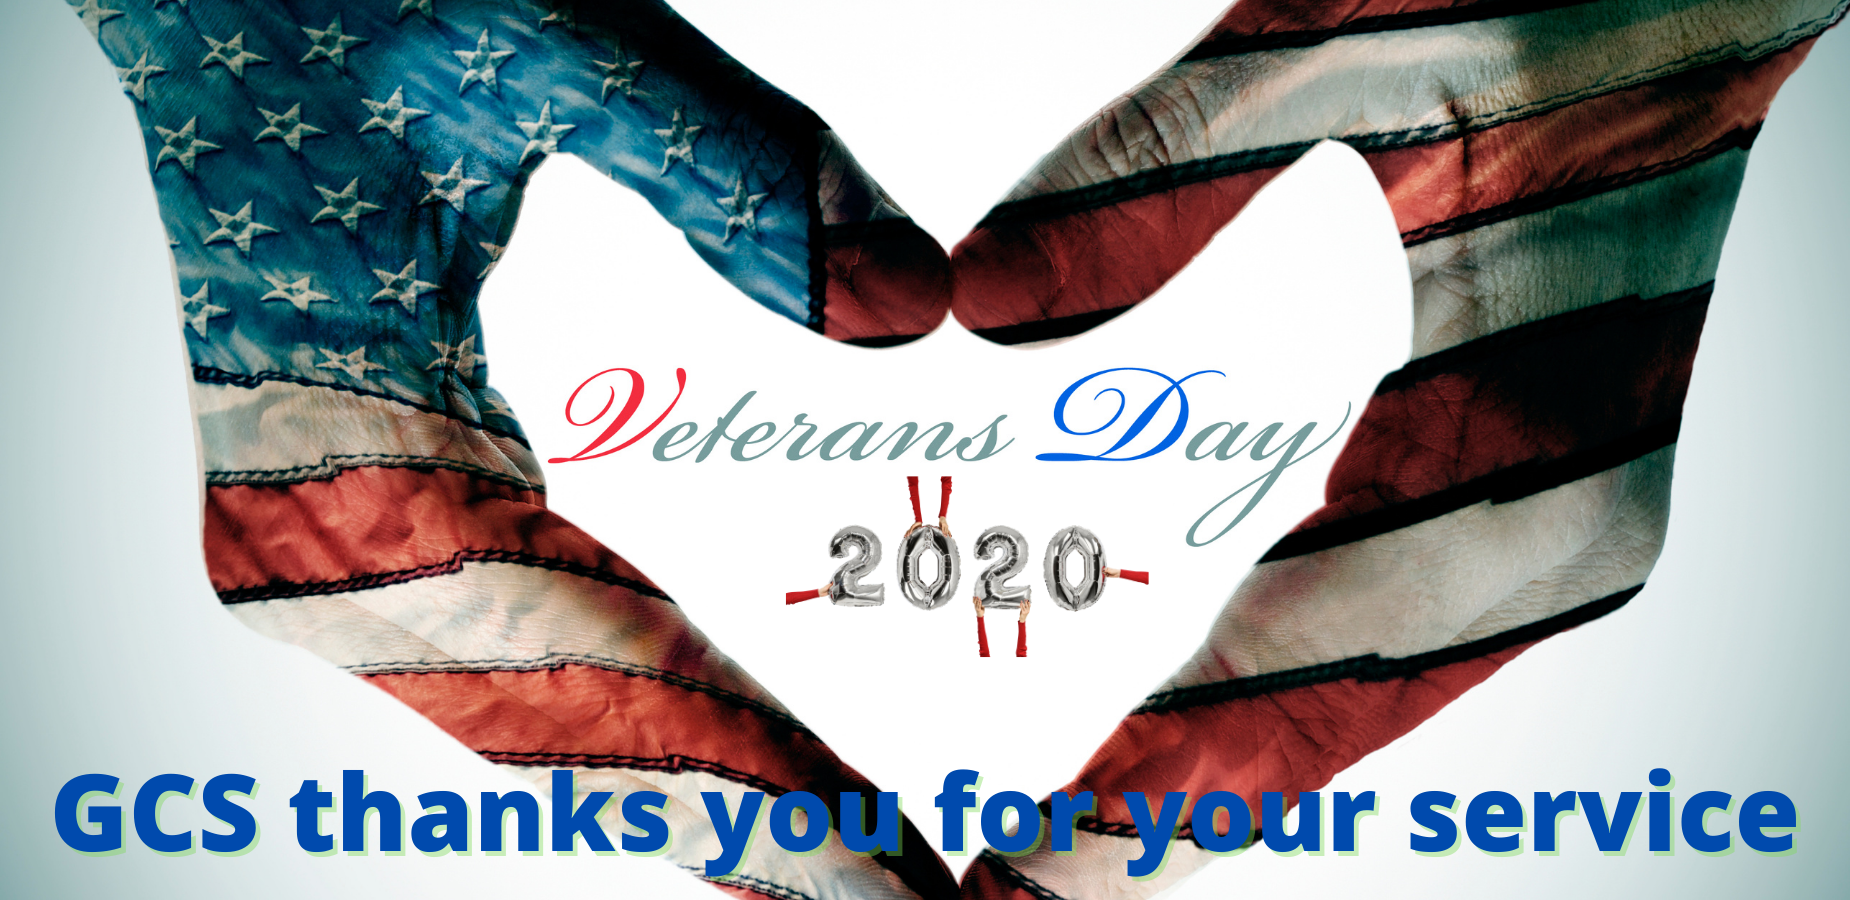 Veteran's Day: Thank you for your service